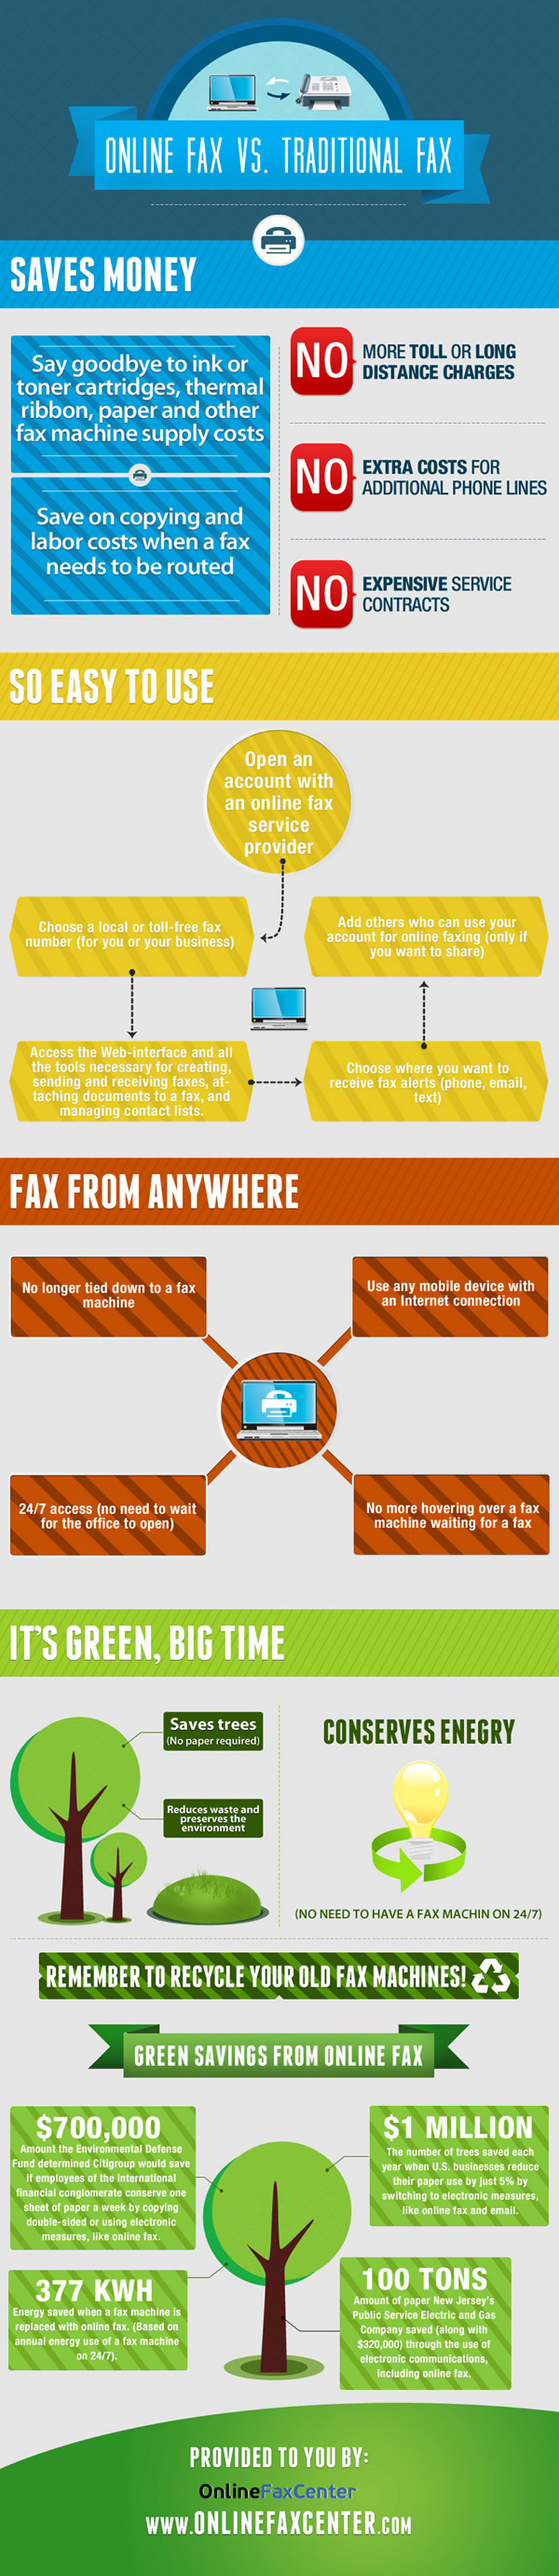 Online Faxing vs Traditional Paper Faxing microsoft fax windows 7 microsoft fax number